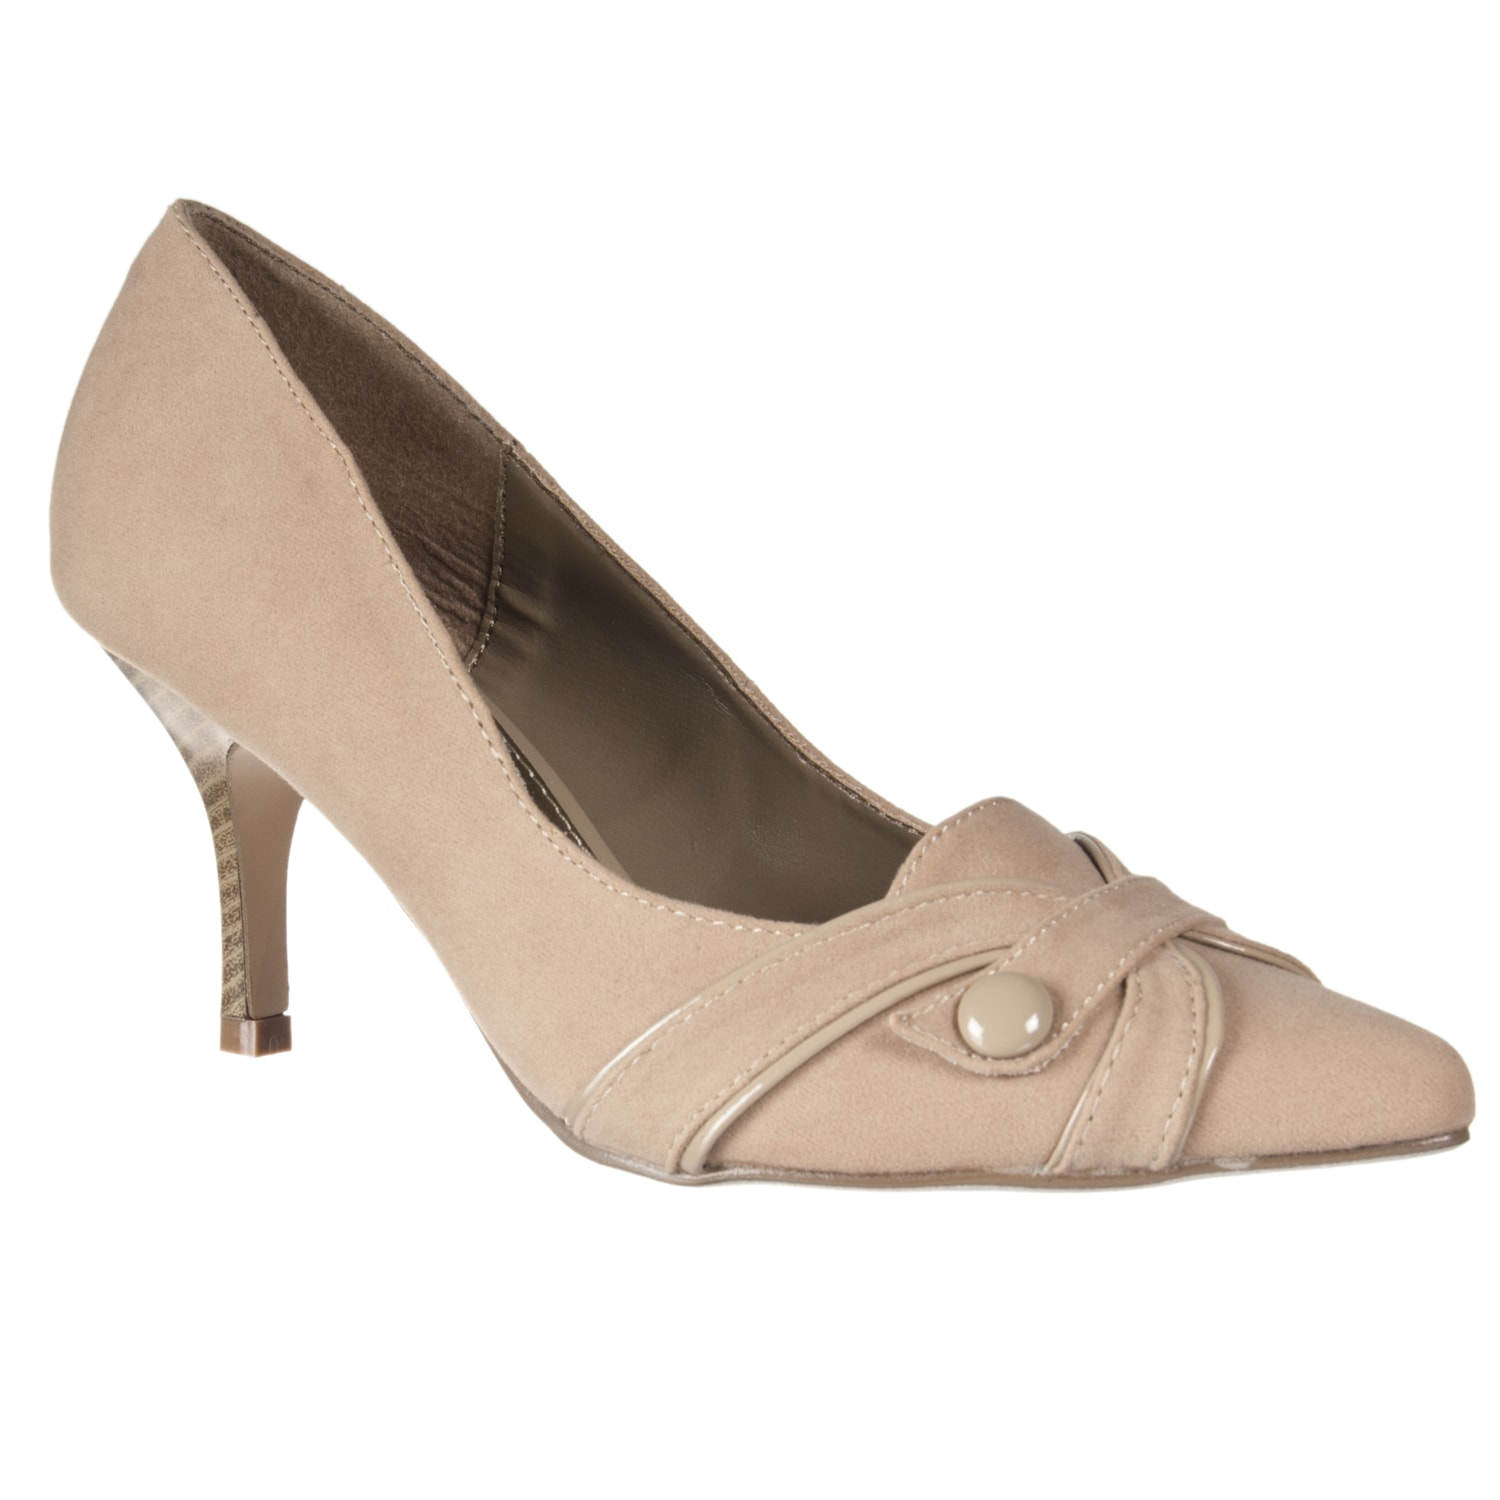 Riverberry Women's 'Exhbitor' Beige Pointed-toe Pumps